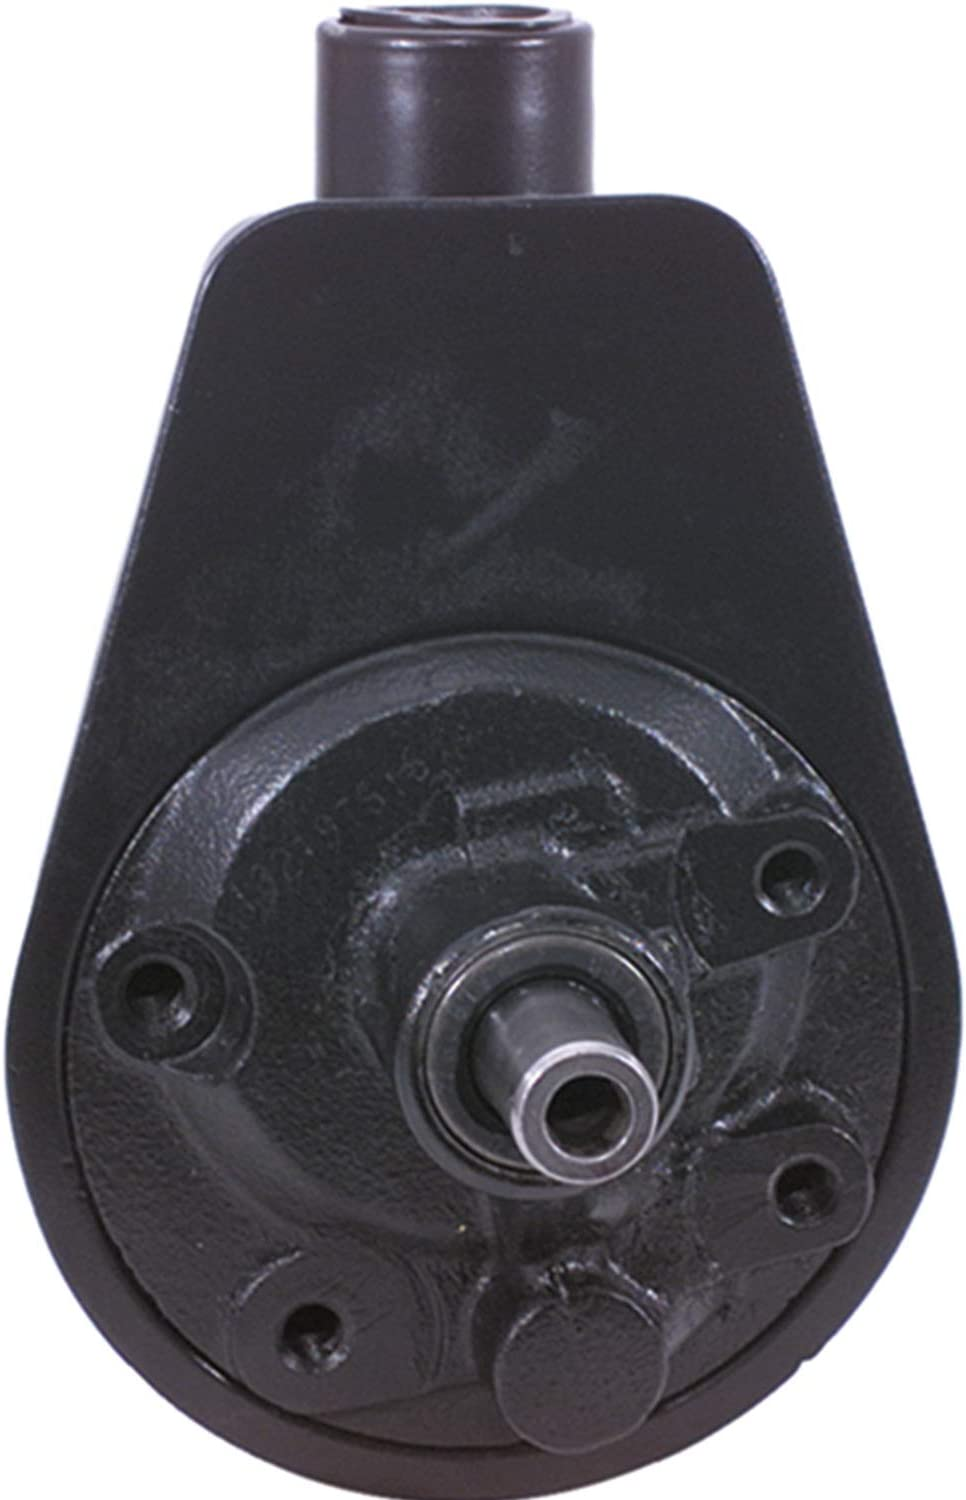 Cardone 20-7878 Remanufactured Power Steering Reservoi Complete Free Shipping with Pump Max 76% OFF